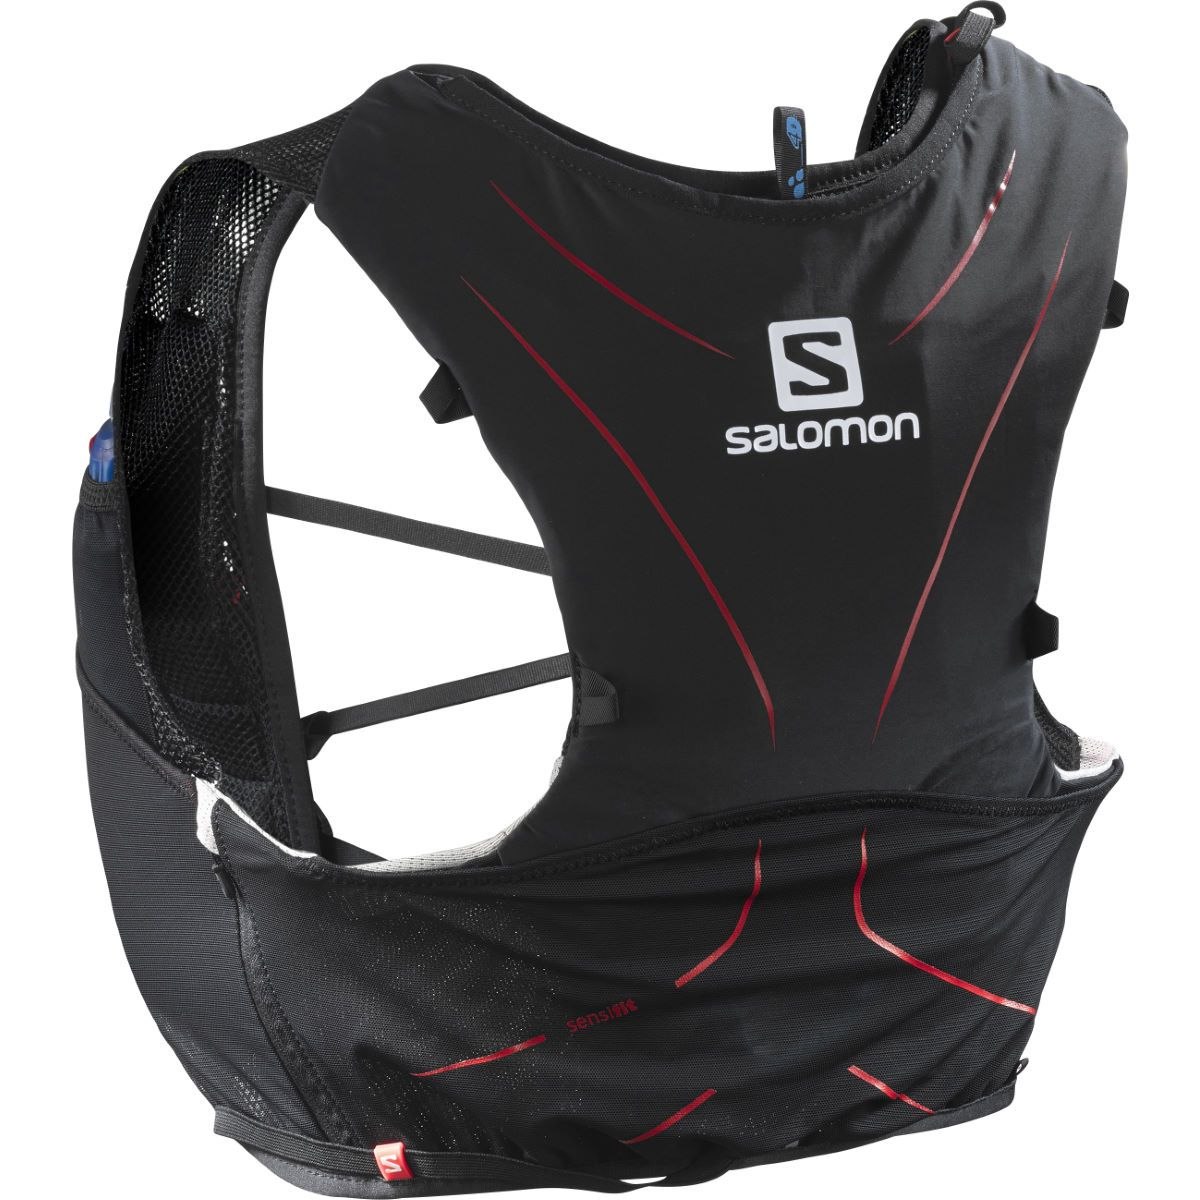 Salomon Adv Skin 5 Set Black Red 2xs Hydration Systems Running Vest Running Clothes Hydration Pack